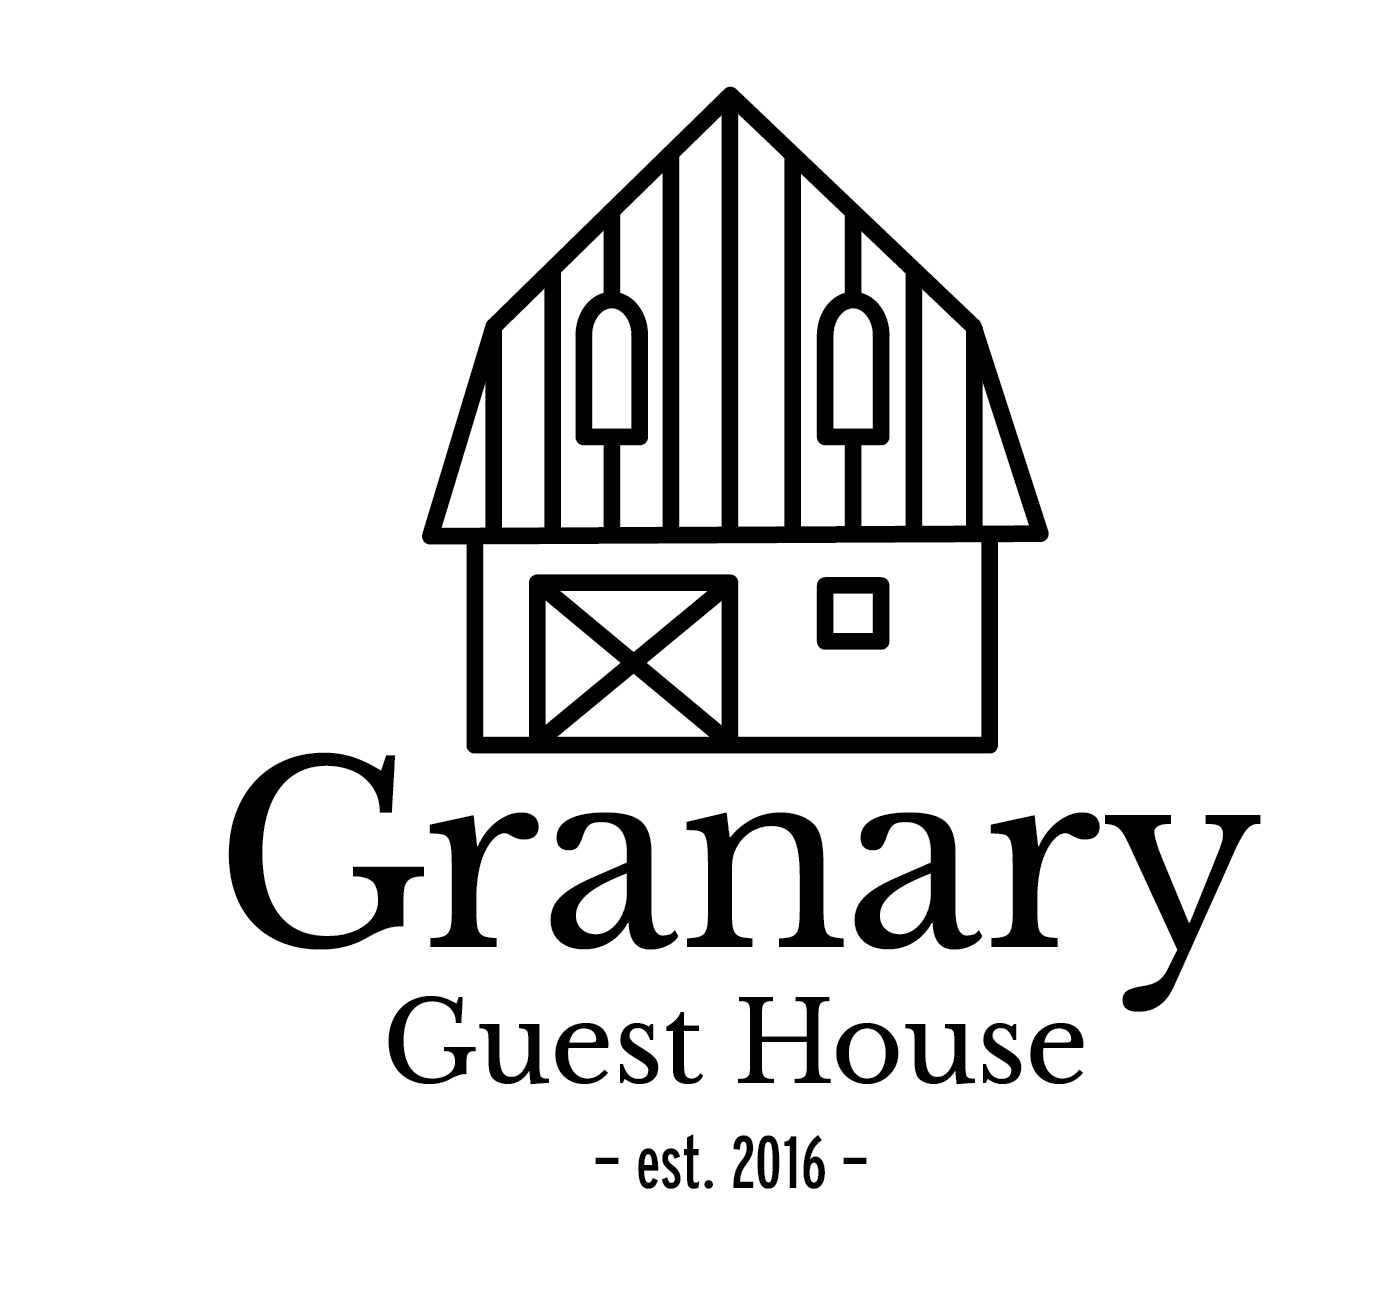 The Granary Guest House